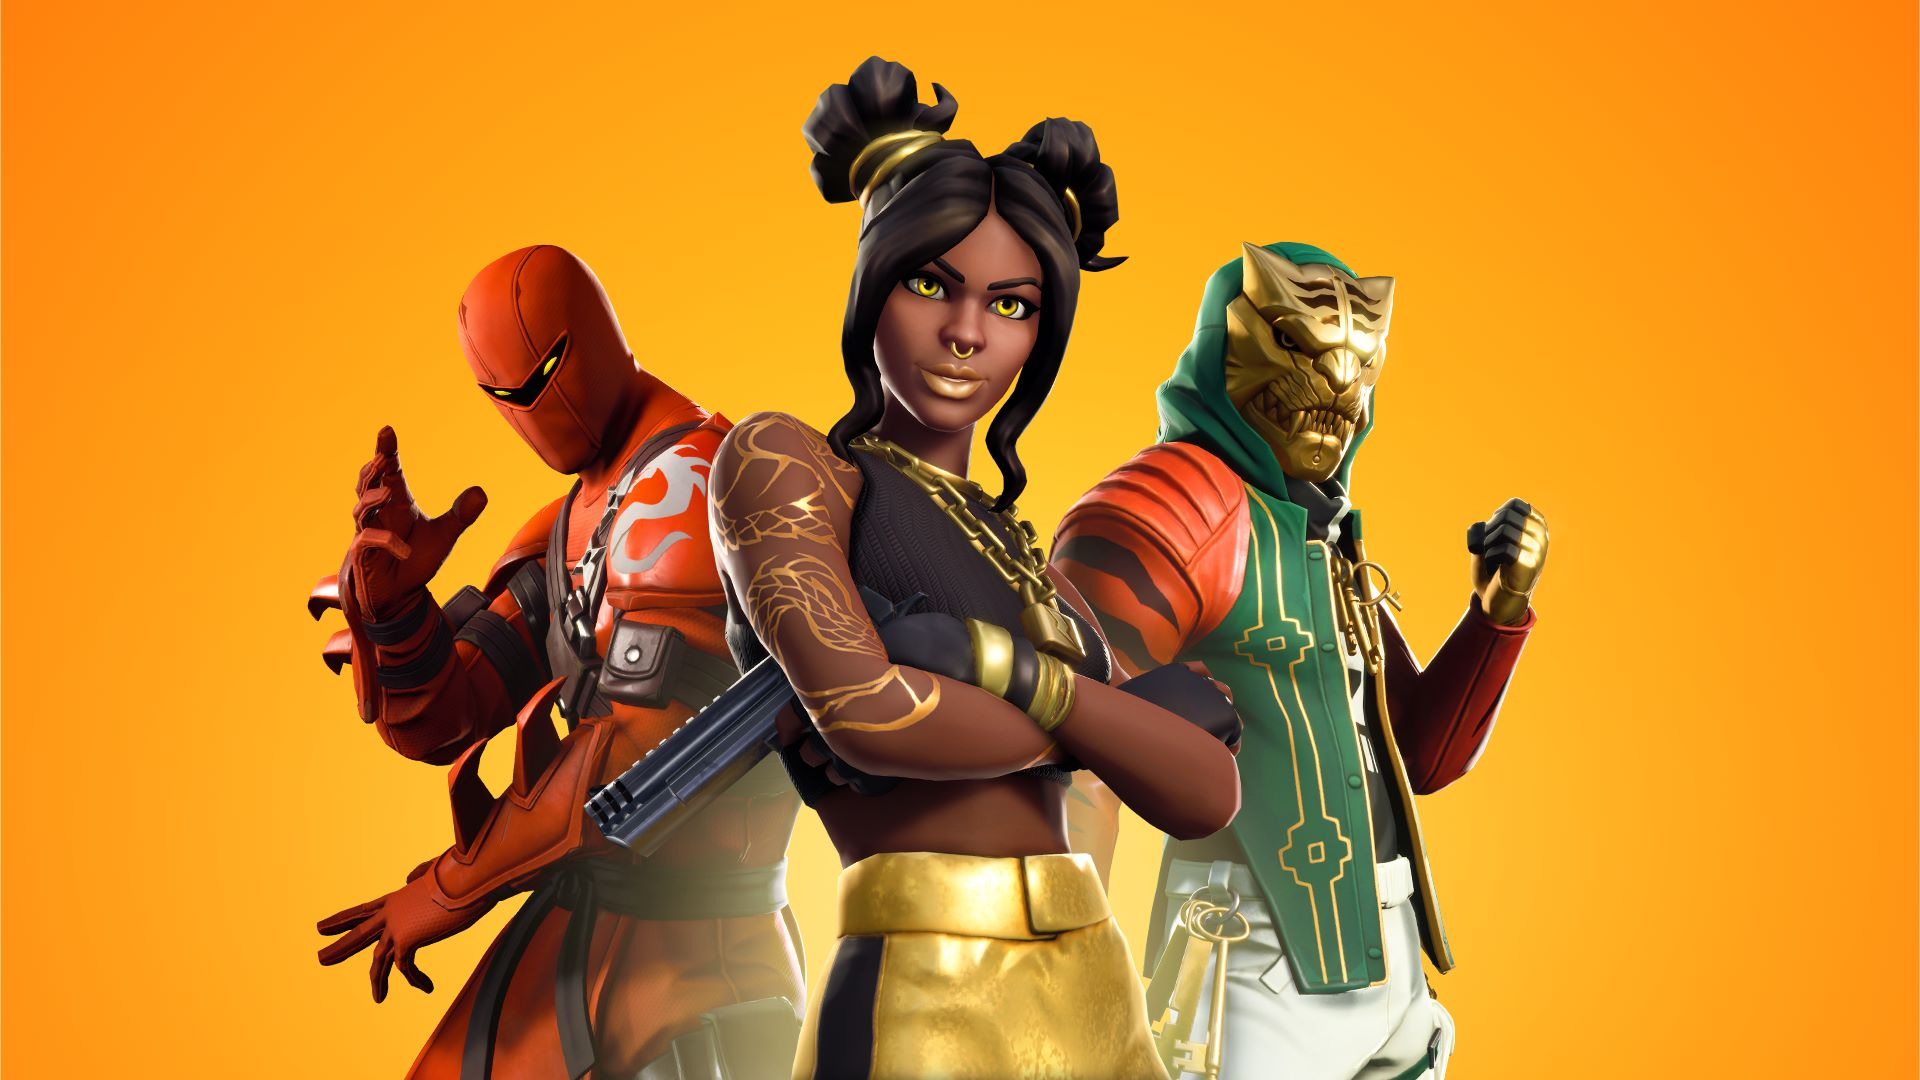 fortnite skin generator no human verification season 8 get fortnite microsoft store - free fortnite skins codes no human verification